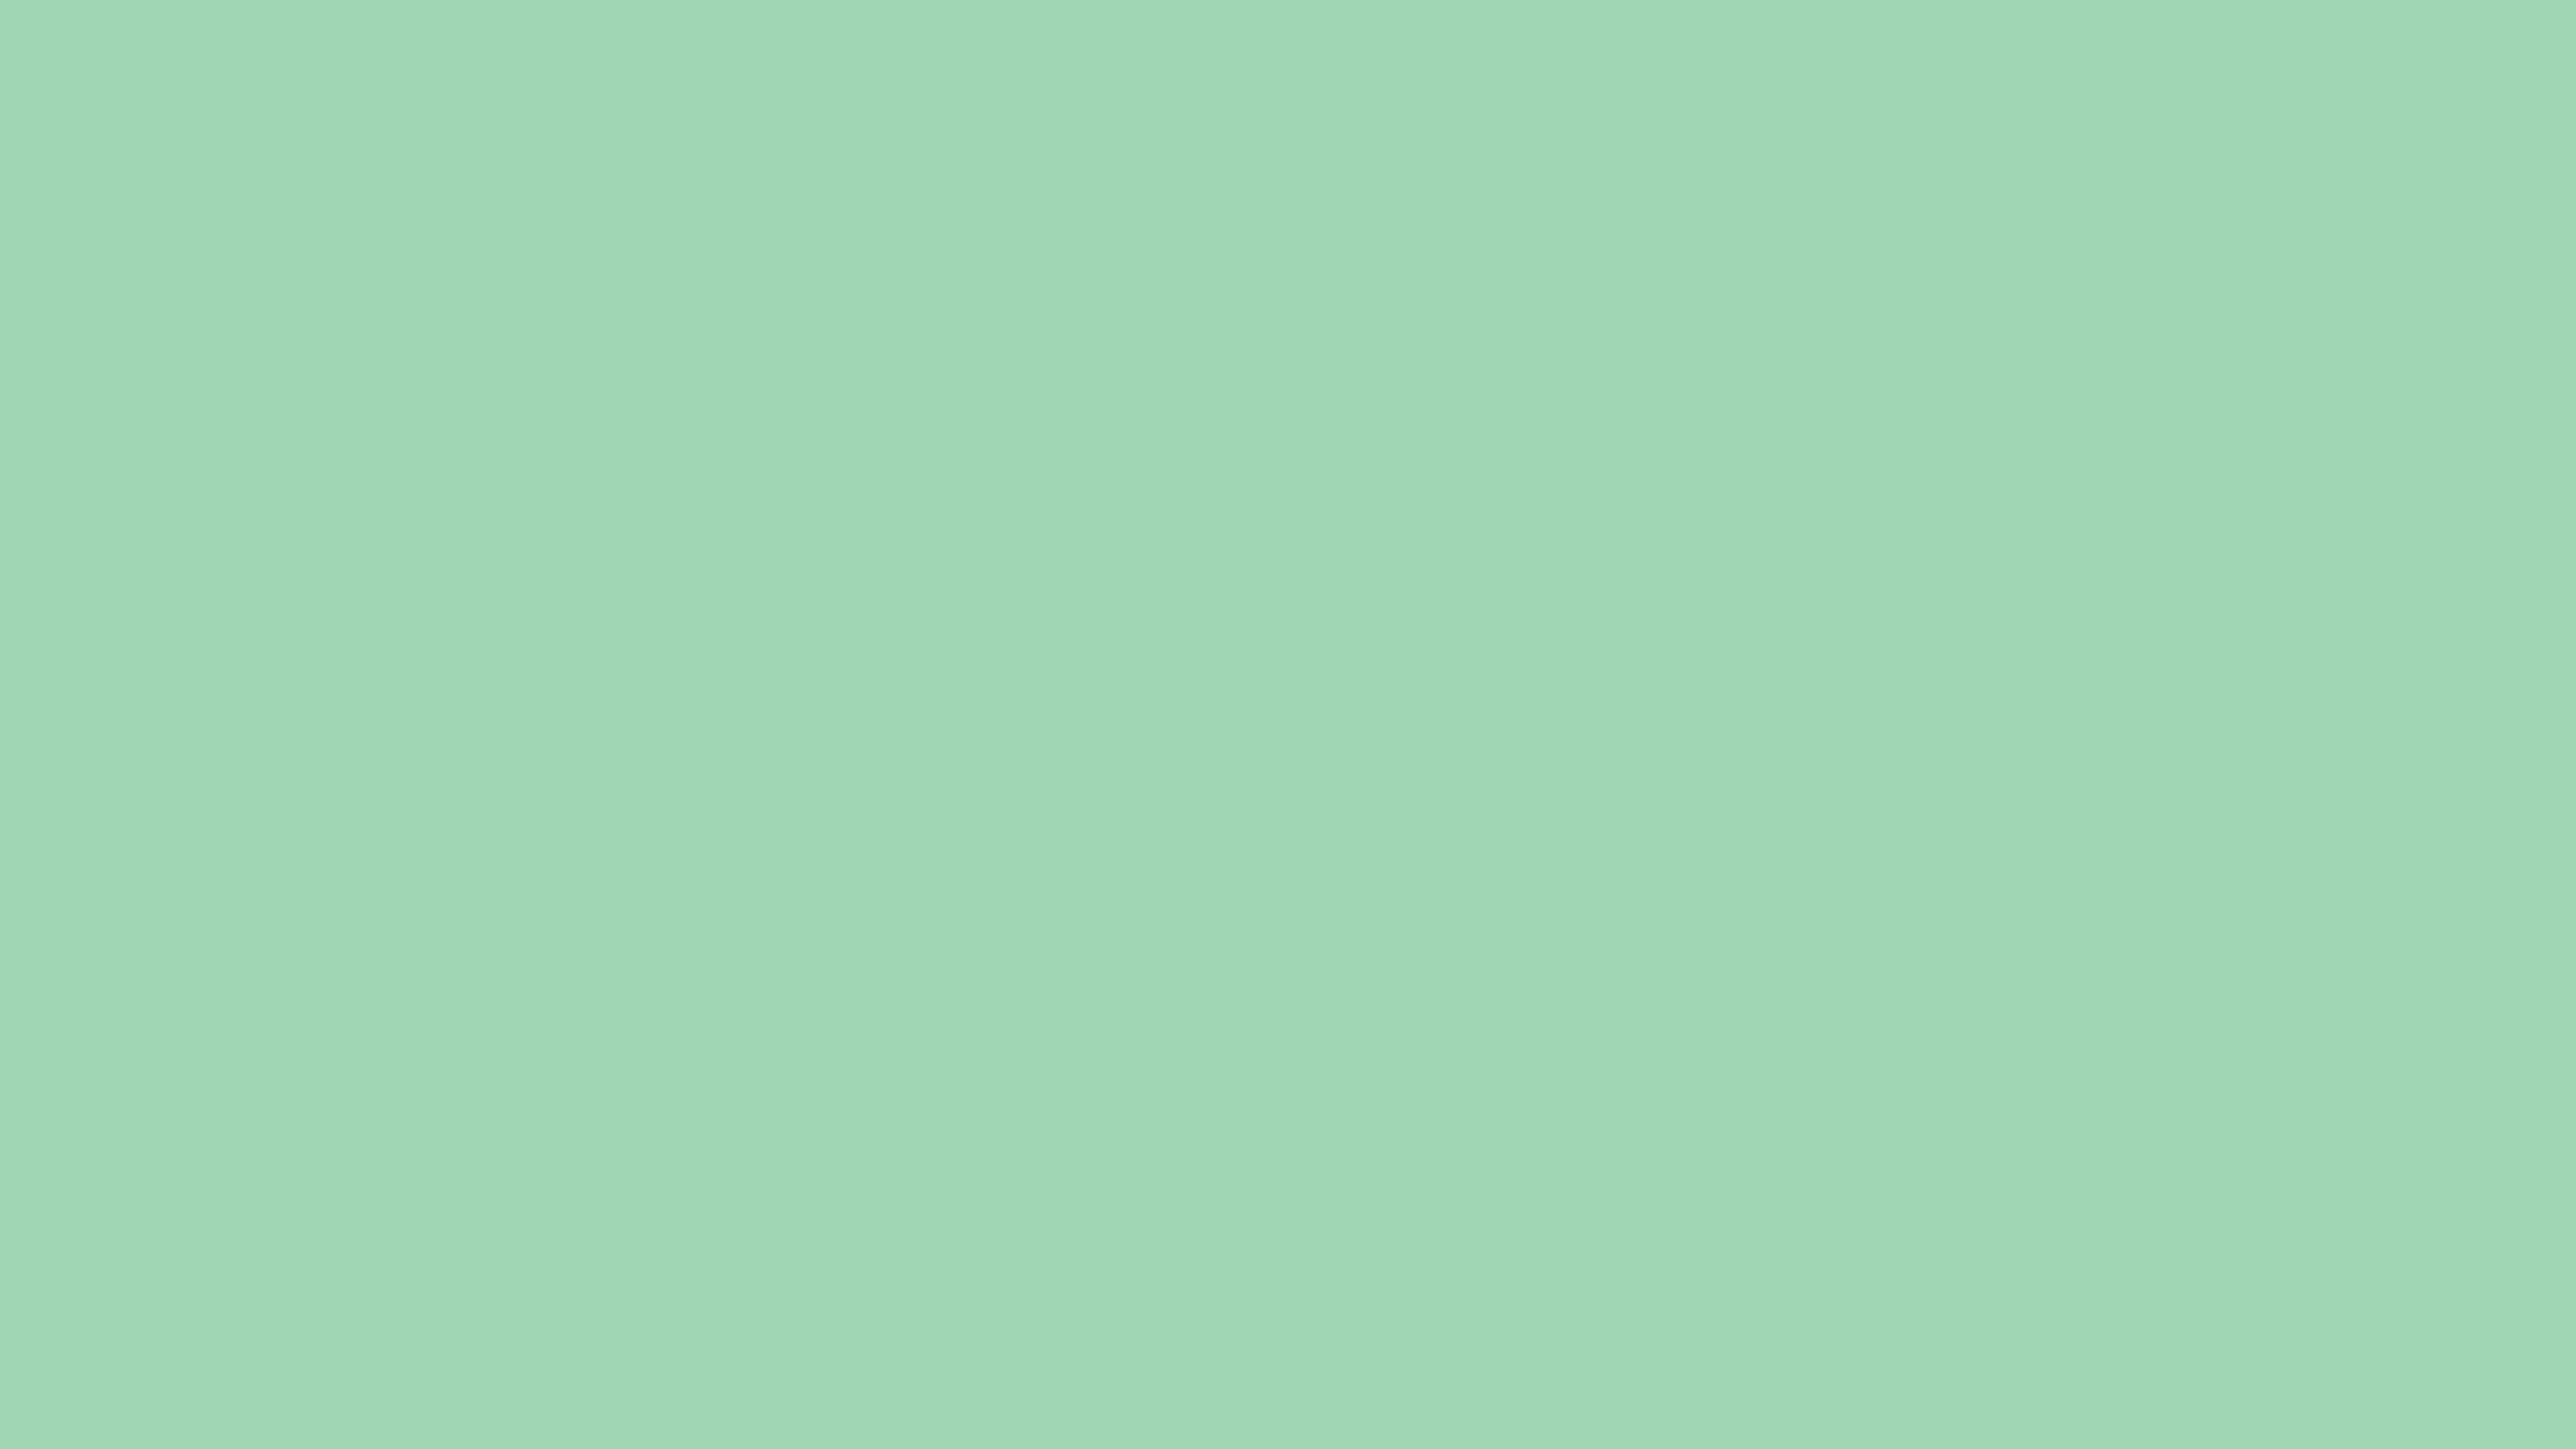 4096x2304 Turquoise Green Solid Color Background